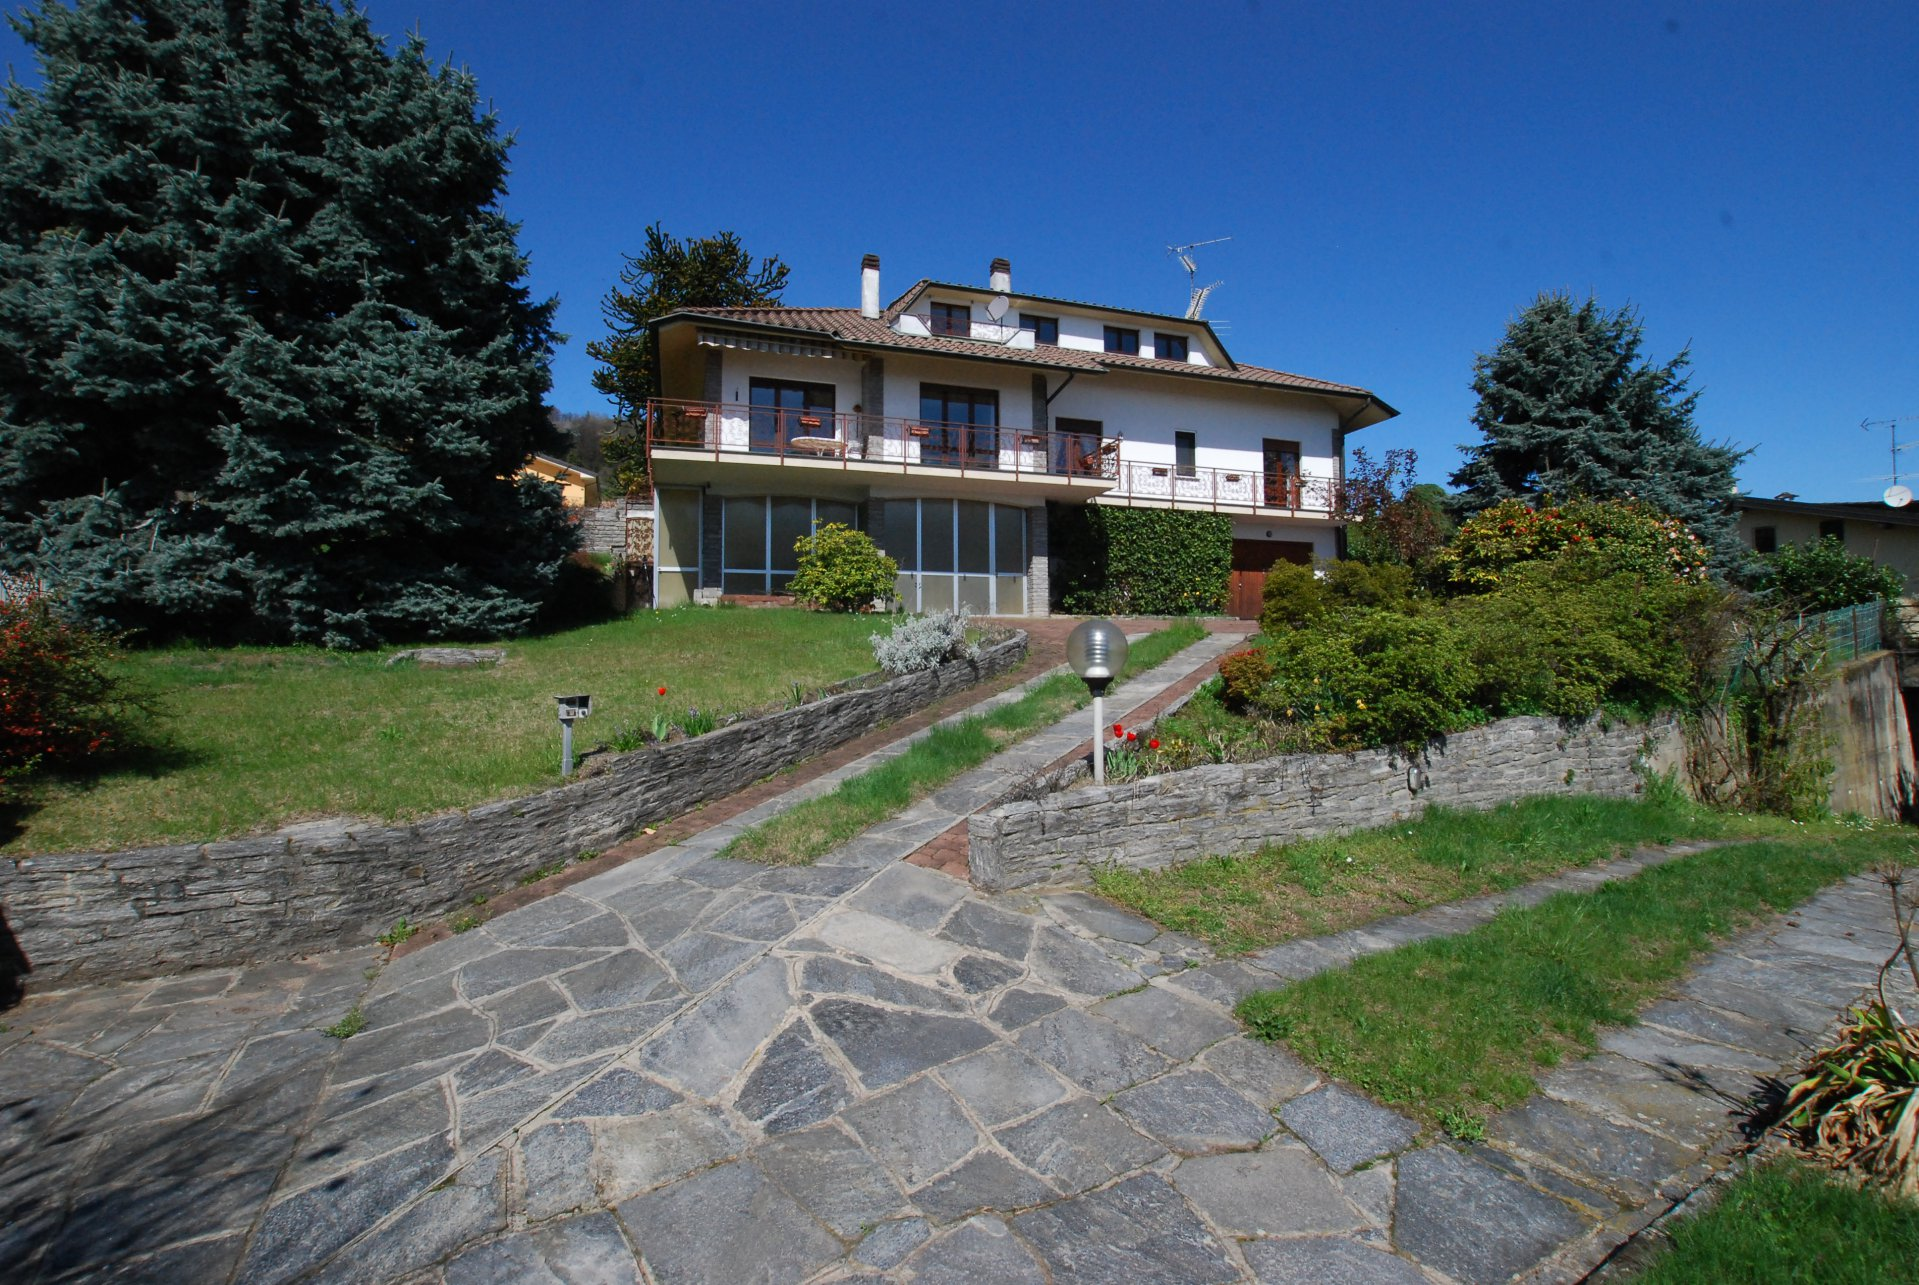 Wonderful lake view villa for sale in Massino Visconti - entrance